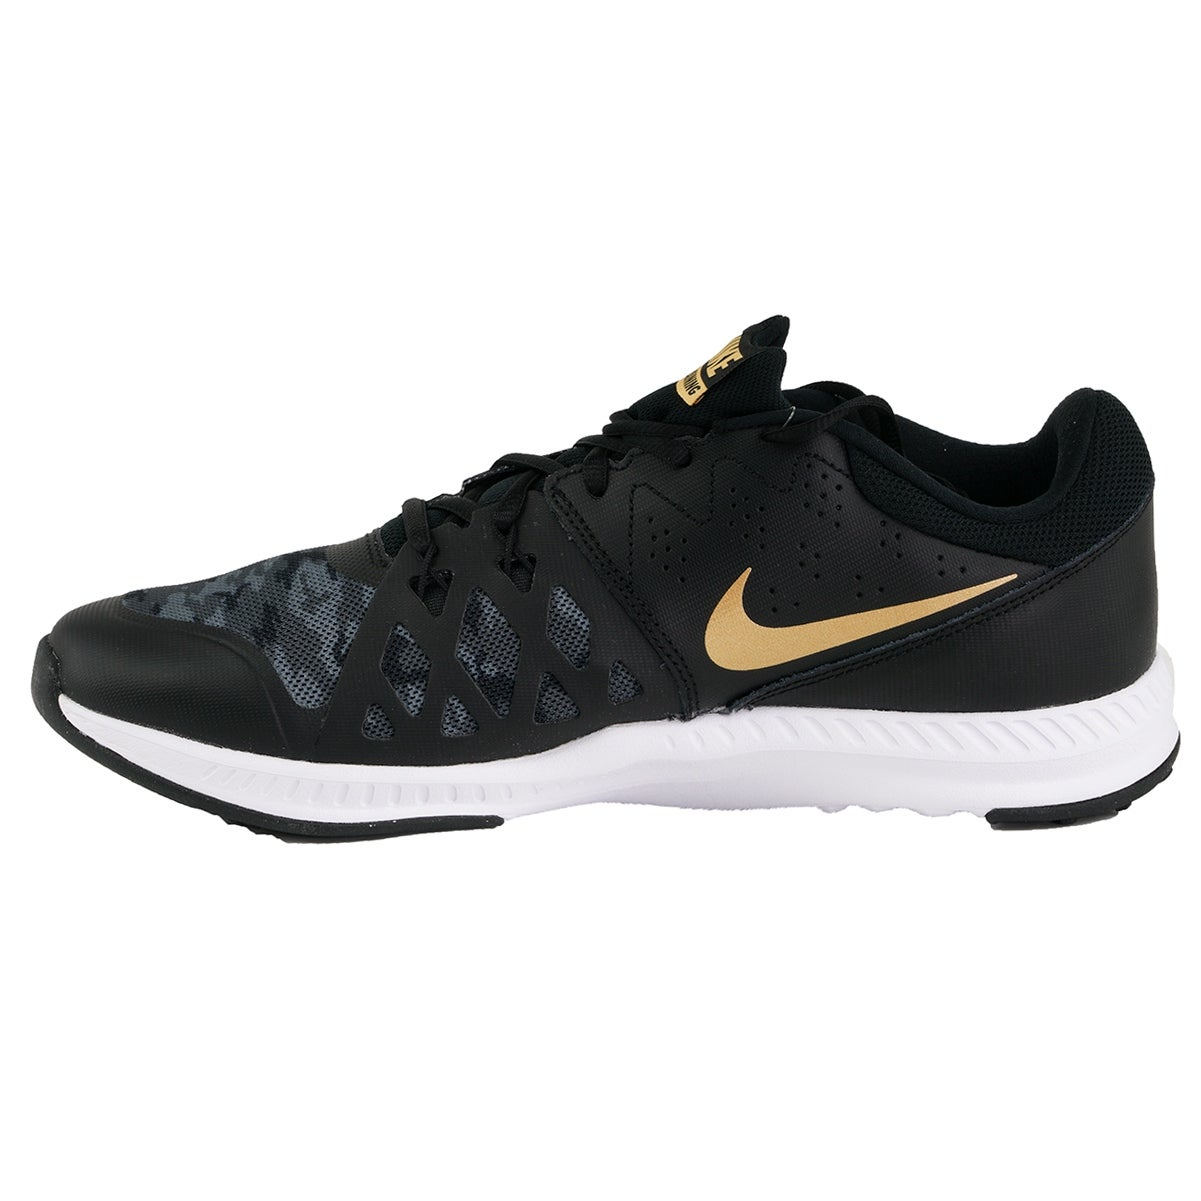 f6cf931f472 Shop Nike Men s Air Epic Speed TR II Shoes - Free Shipping Today -  Overstock - 25773256